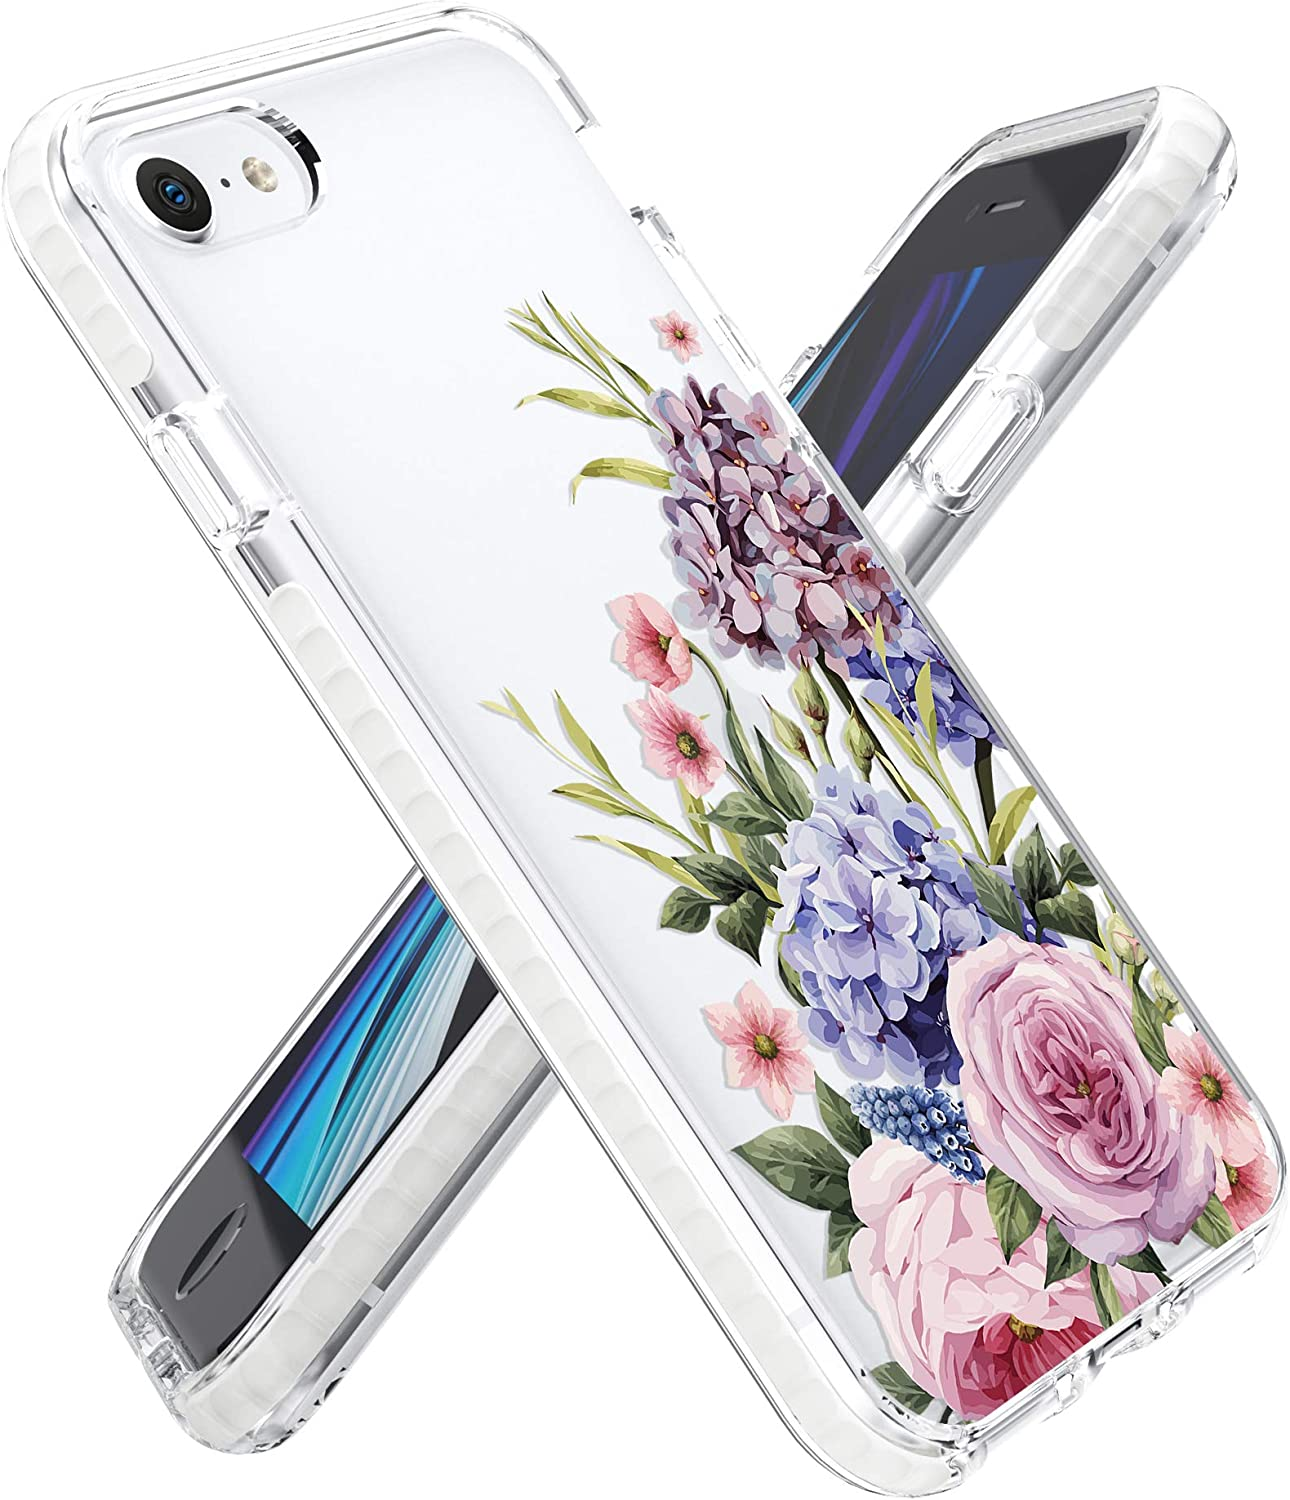 Rose Lake Flower Phone Case for iPhone SE 2020 iPhone 8 iPhone 7 Cover, Hydrangea Floral Pattern Girls Women Clear TPU Shockproof Bumper Back Case 4.7-inch